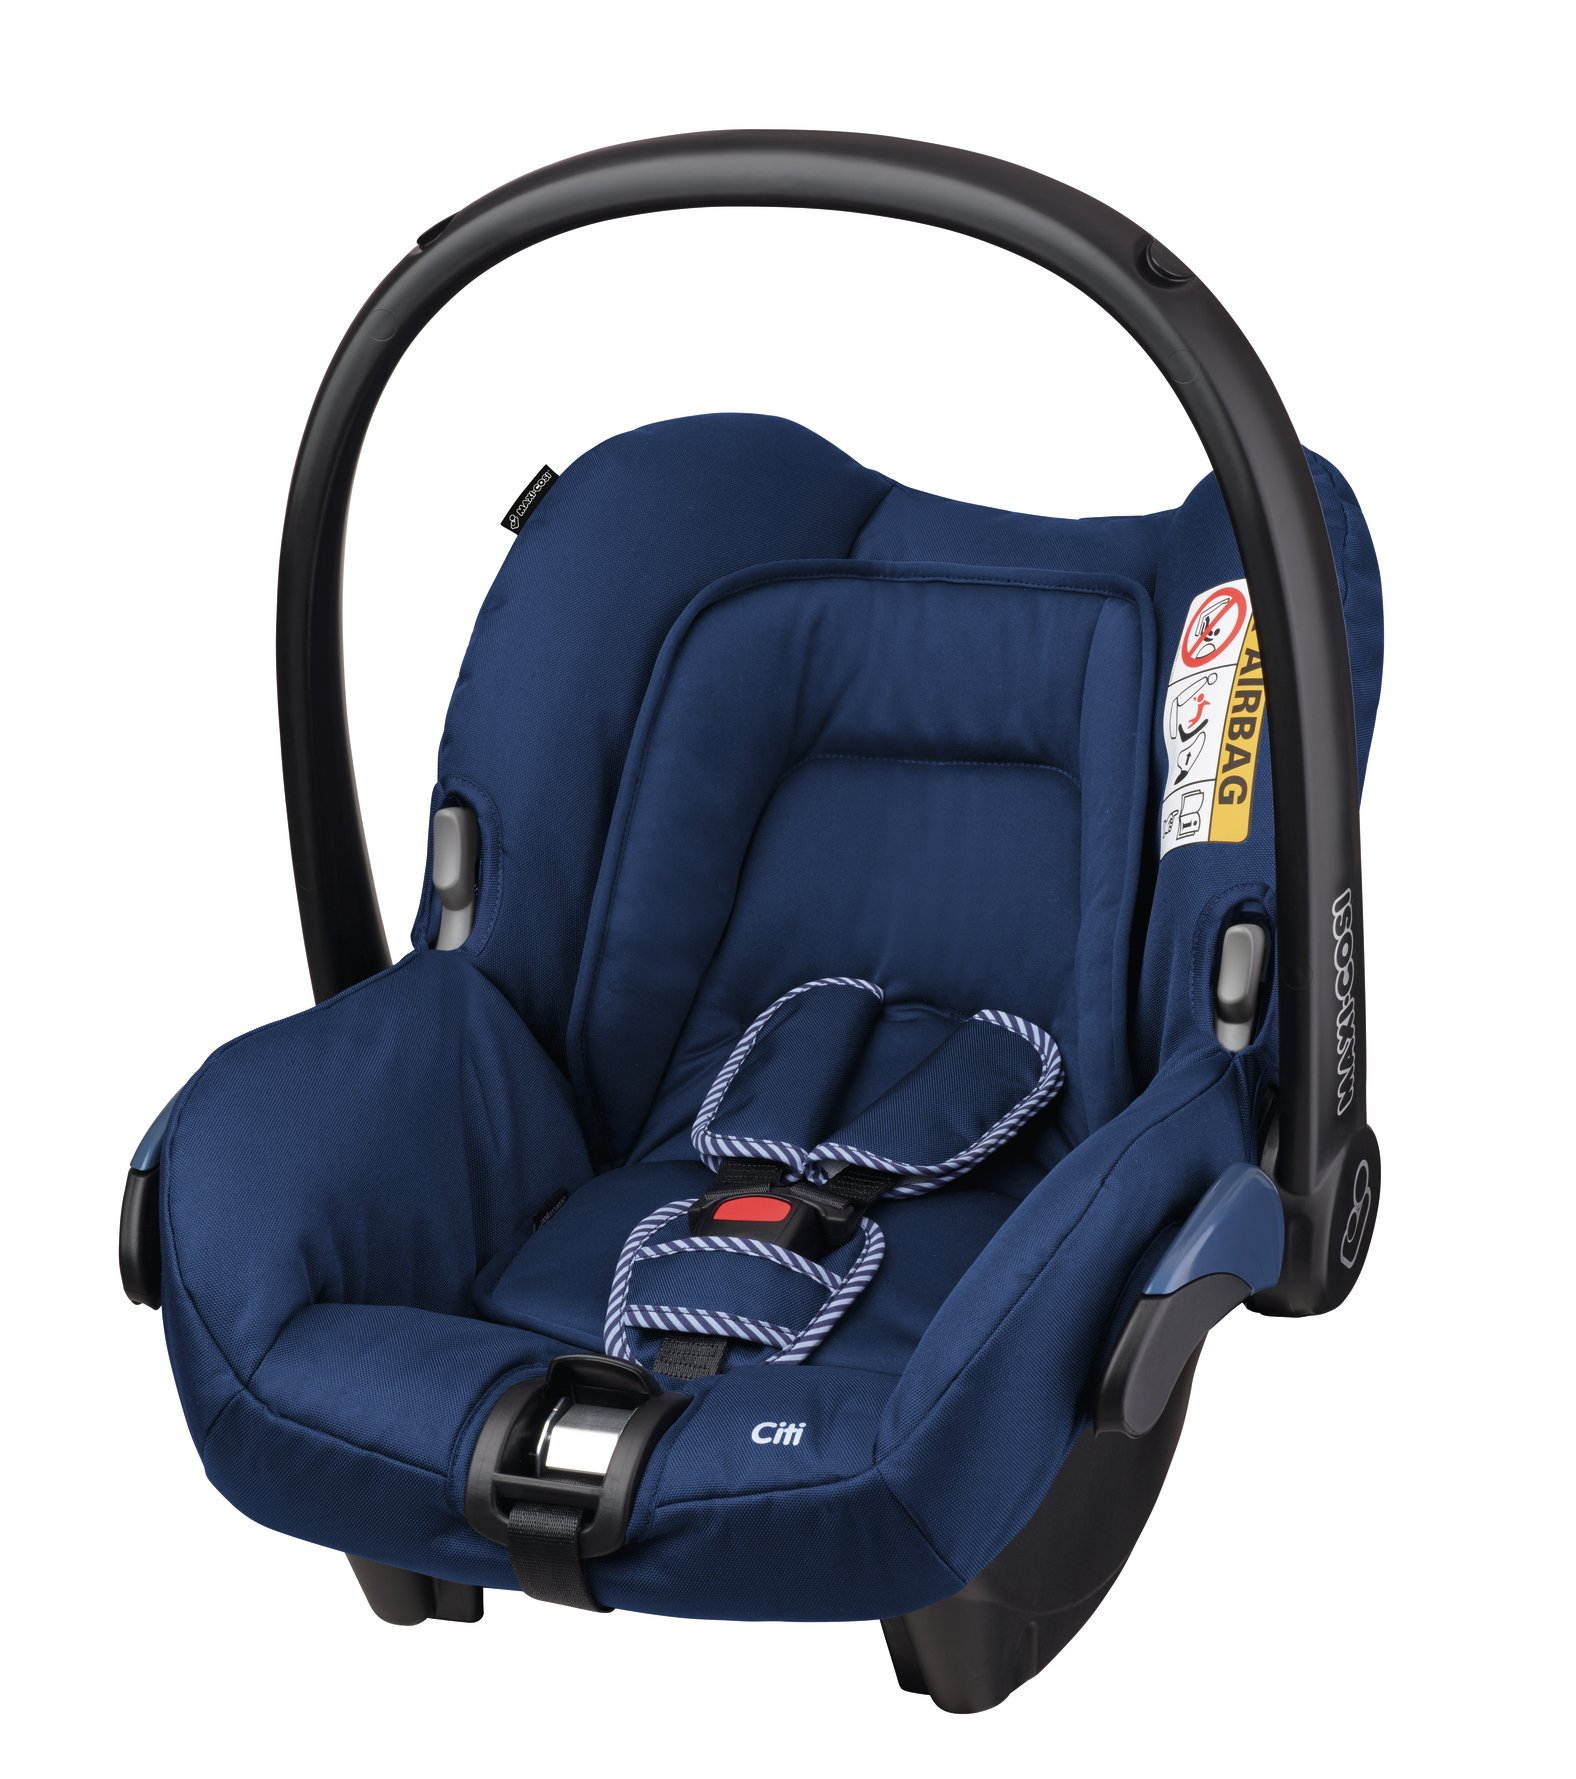 buy maxi cosi citi car seat 0 13 kg. Black Bedroom Furniture Sets. Home Design Ideas